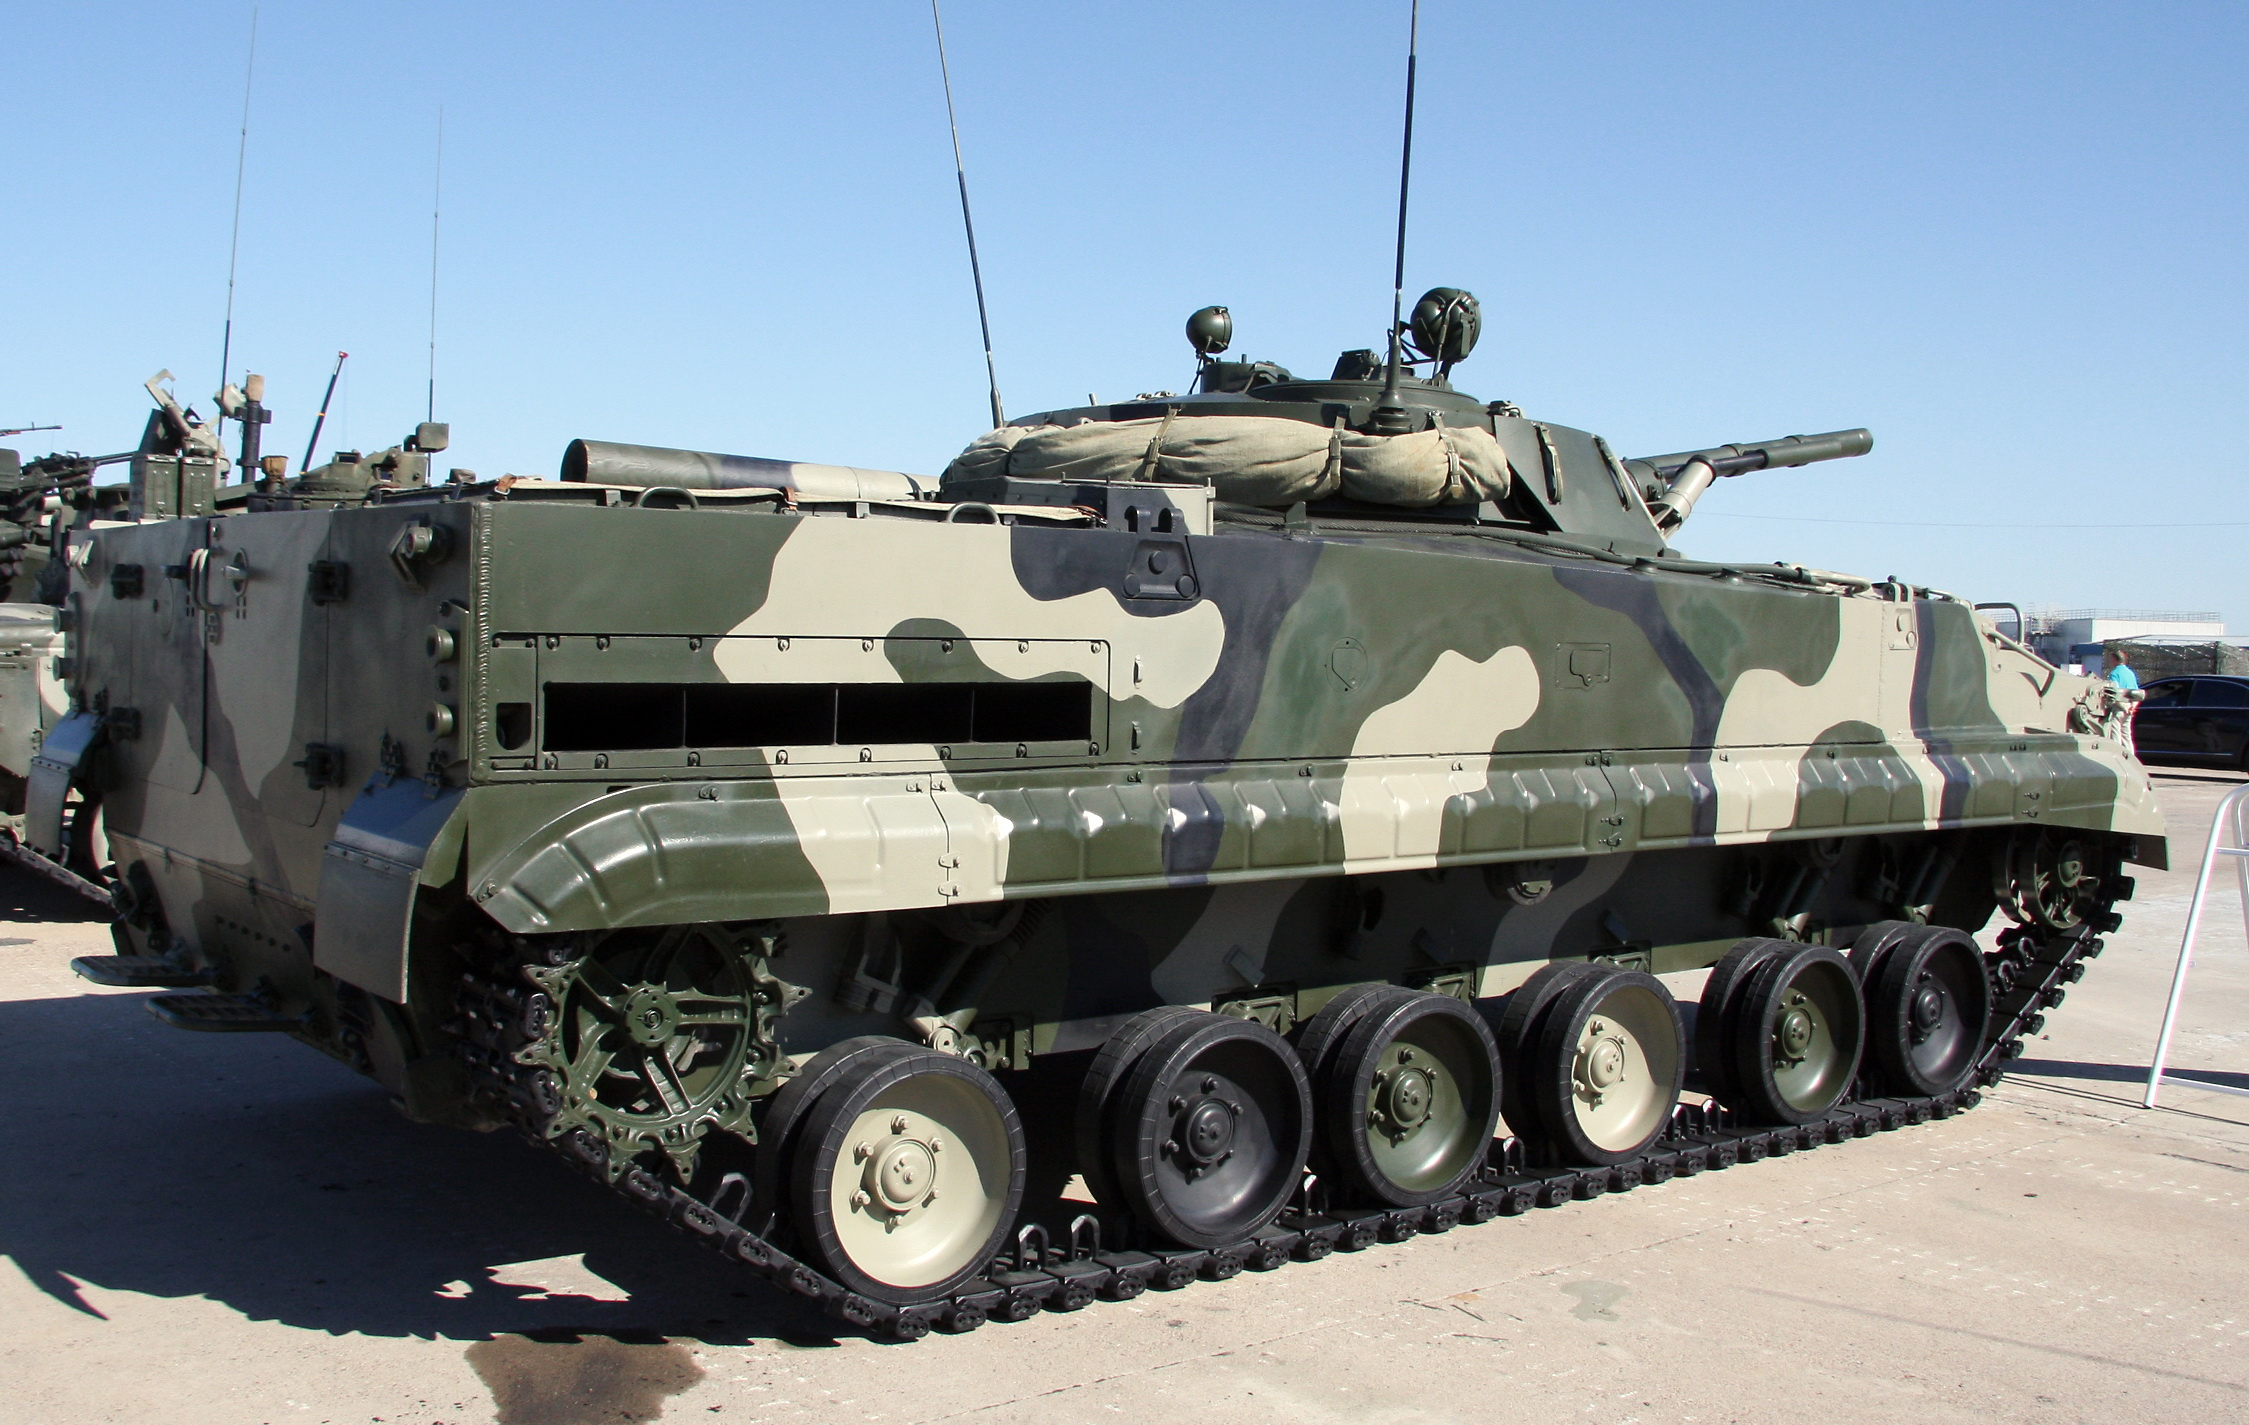 File:BMP-3 0026 copy.jpg - Wik...